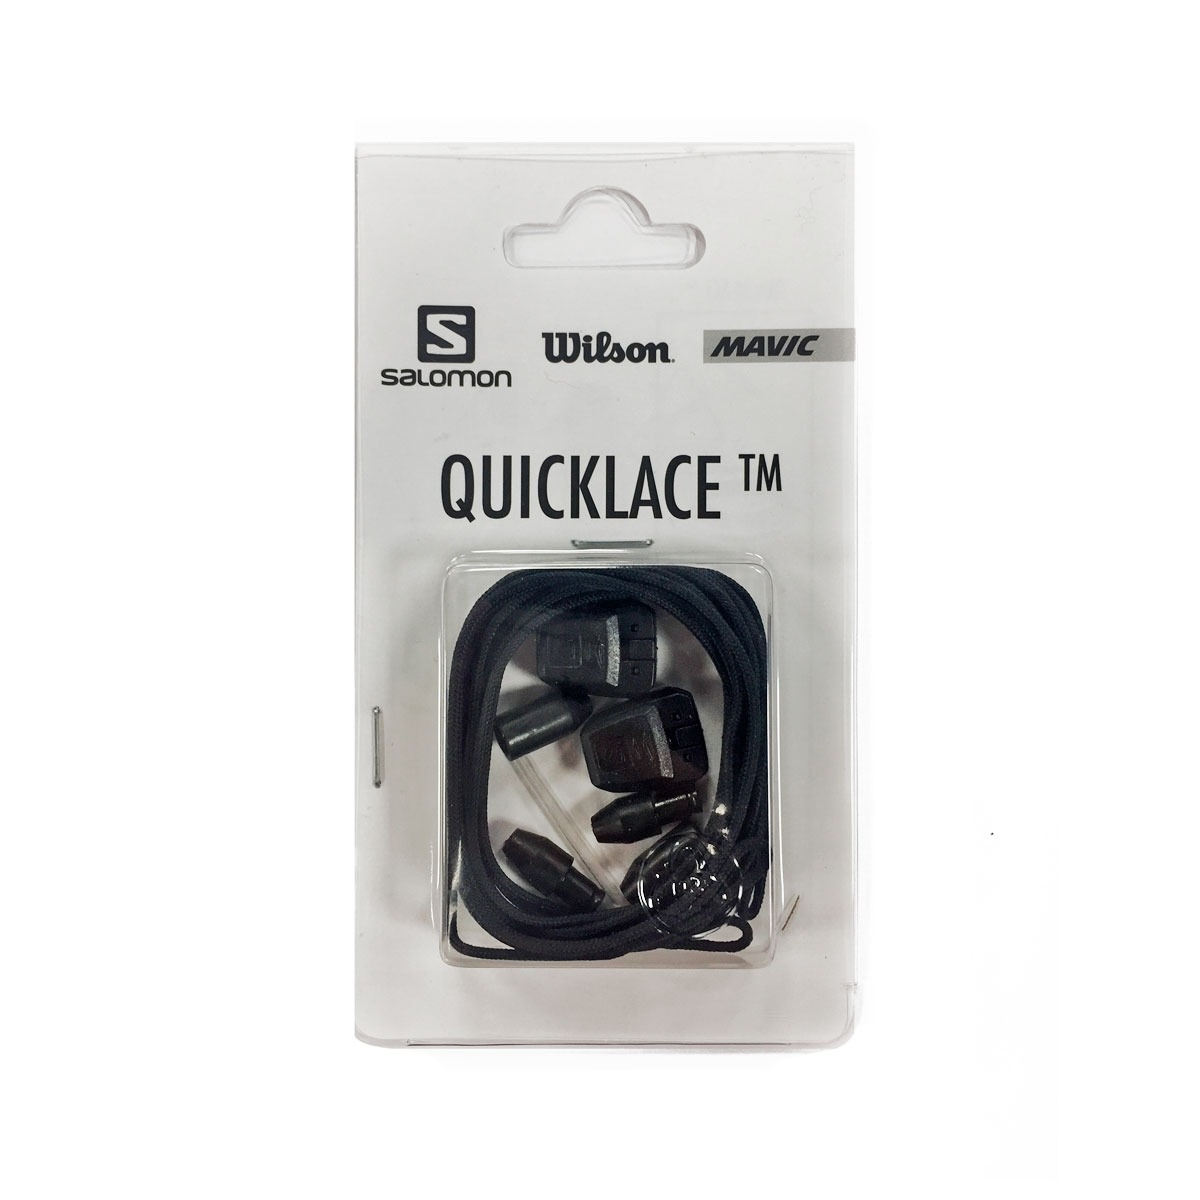 Salomon Cordones Quicklace Kit Repuesto Negro